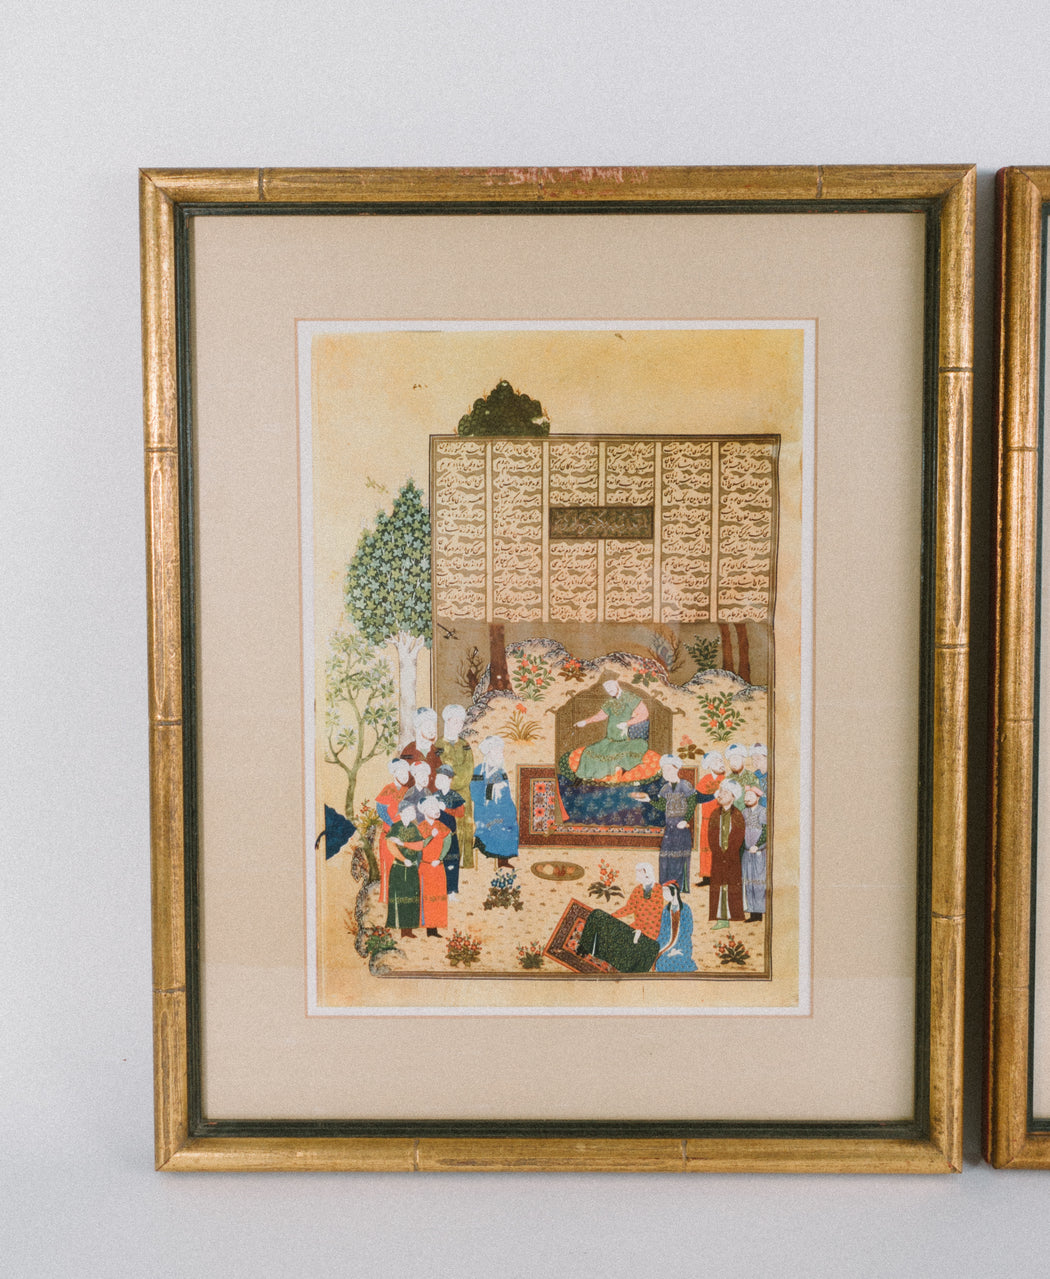 Vintage Persian Miniature Prints | Set of 2 Framed Art